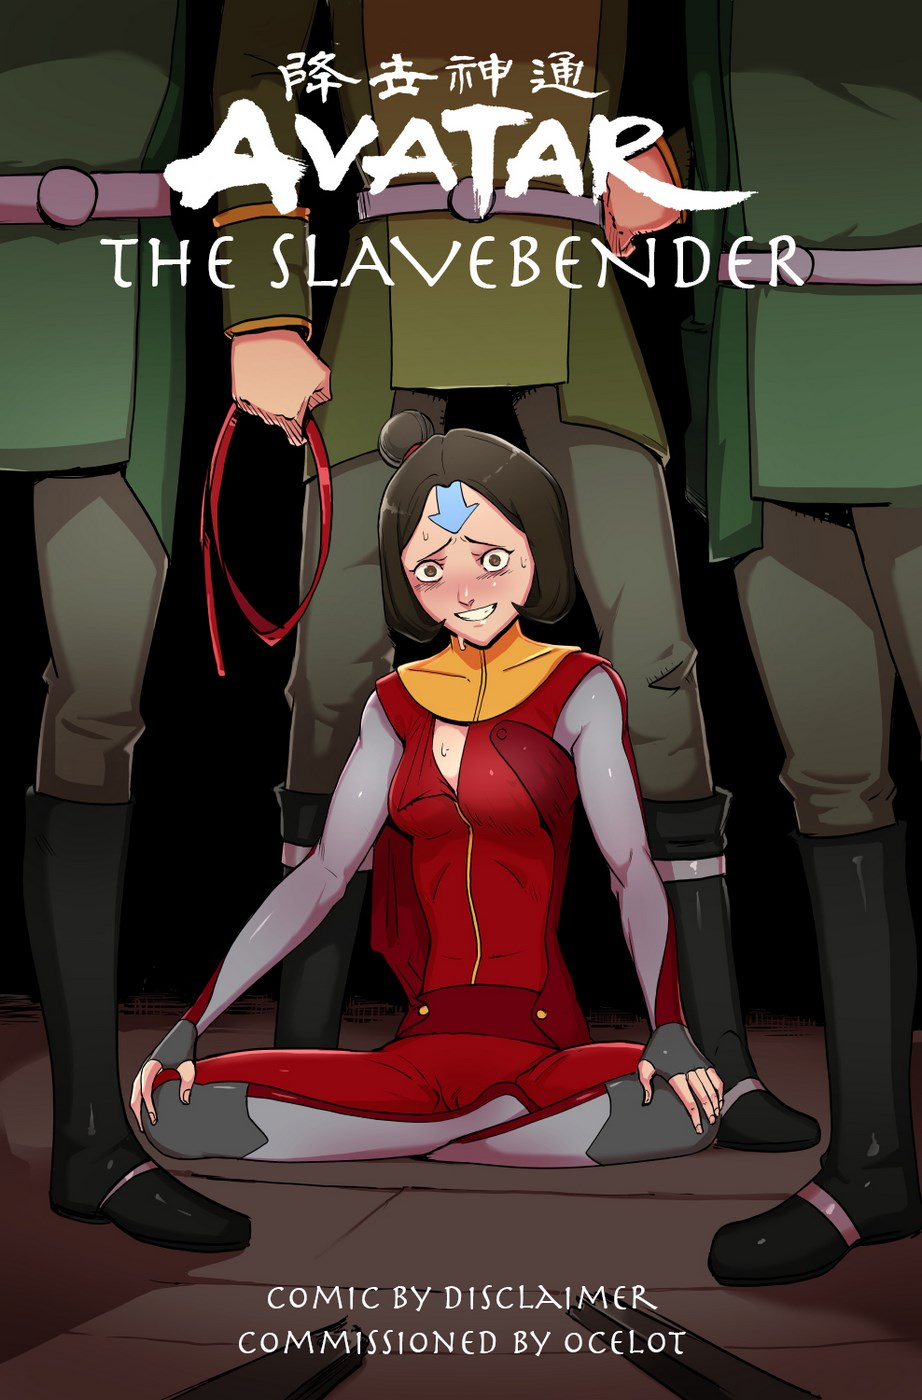 Princess-Avatar-Jinora-The-Last-Airbender-Porn-Comic-Hentai-Manga-slave-blowjob-Rape-double-penetration-orgy-threesome-choking-rough-sex-spitroast-creampie-anal-sex-doggy-style-slavebender